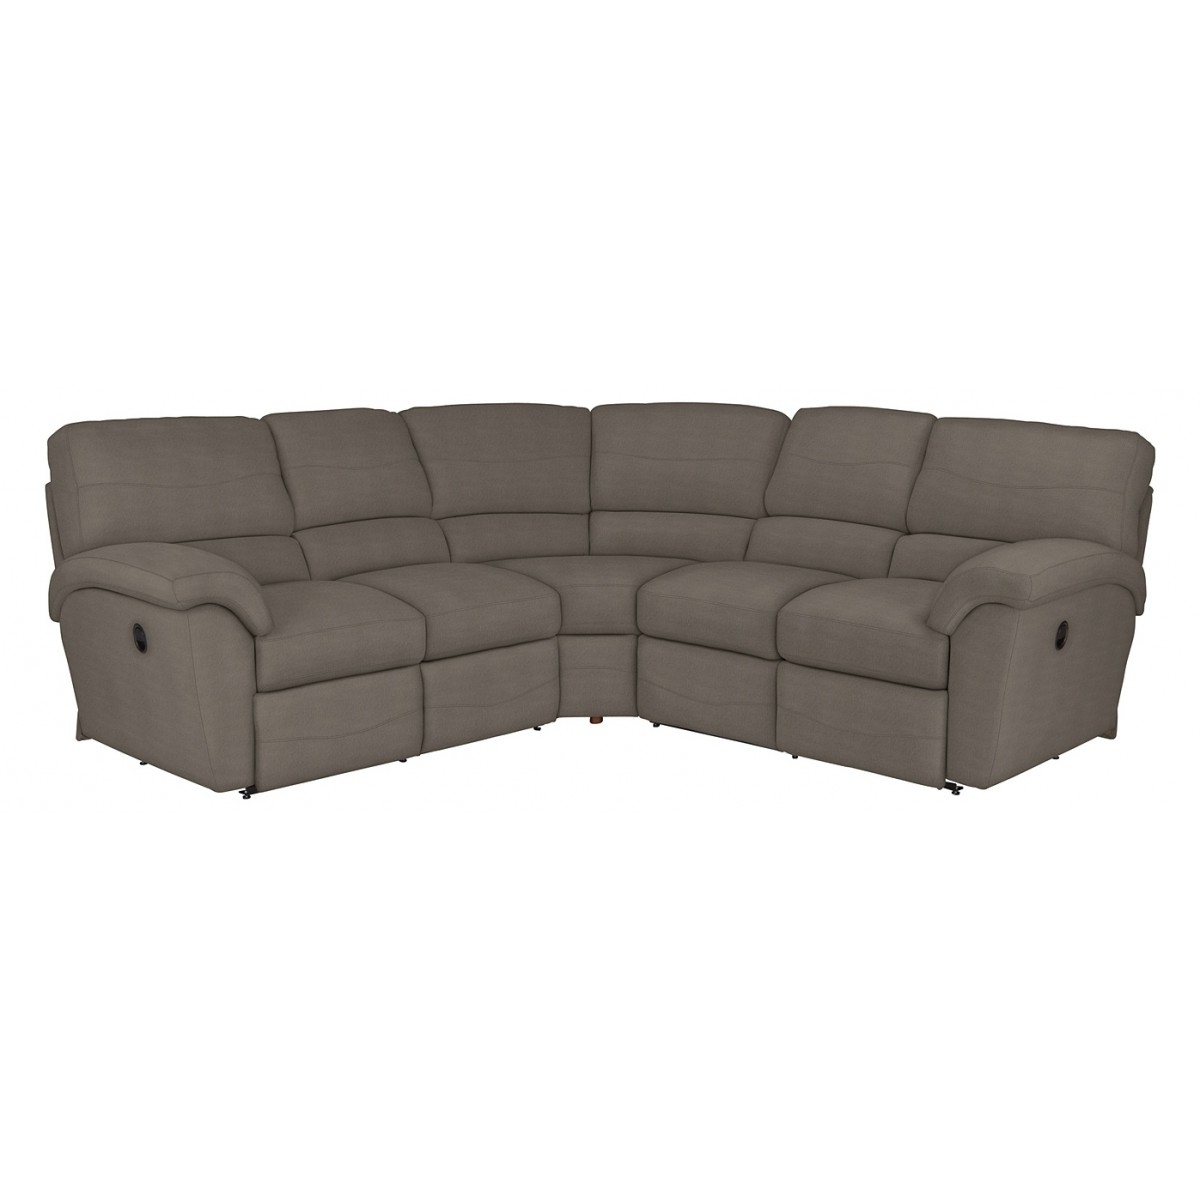 Z Boy Reese Reclining Sectional Throughout Well Liked Lazy Boy Sectional Sofas (View 11 of 15)